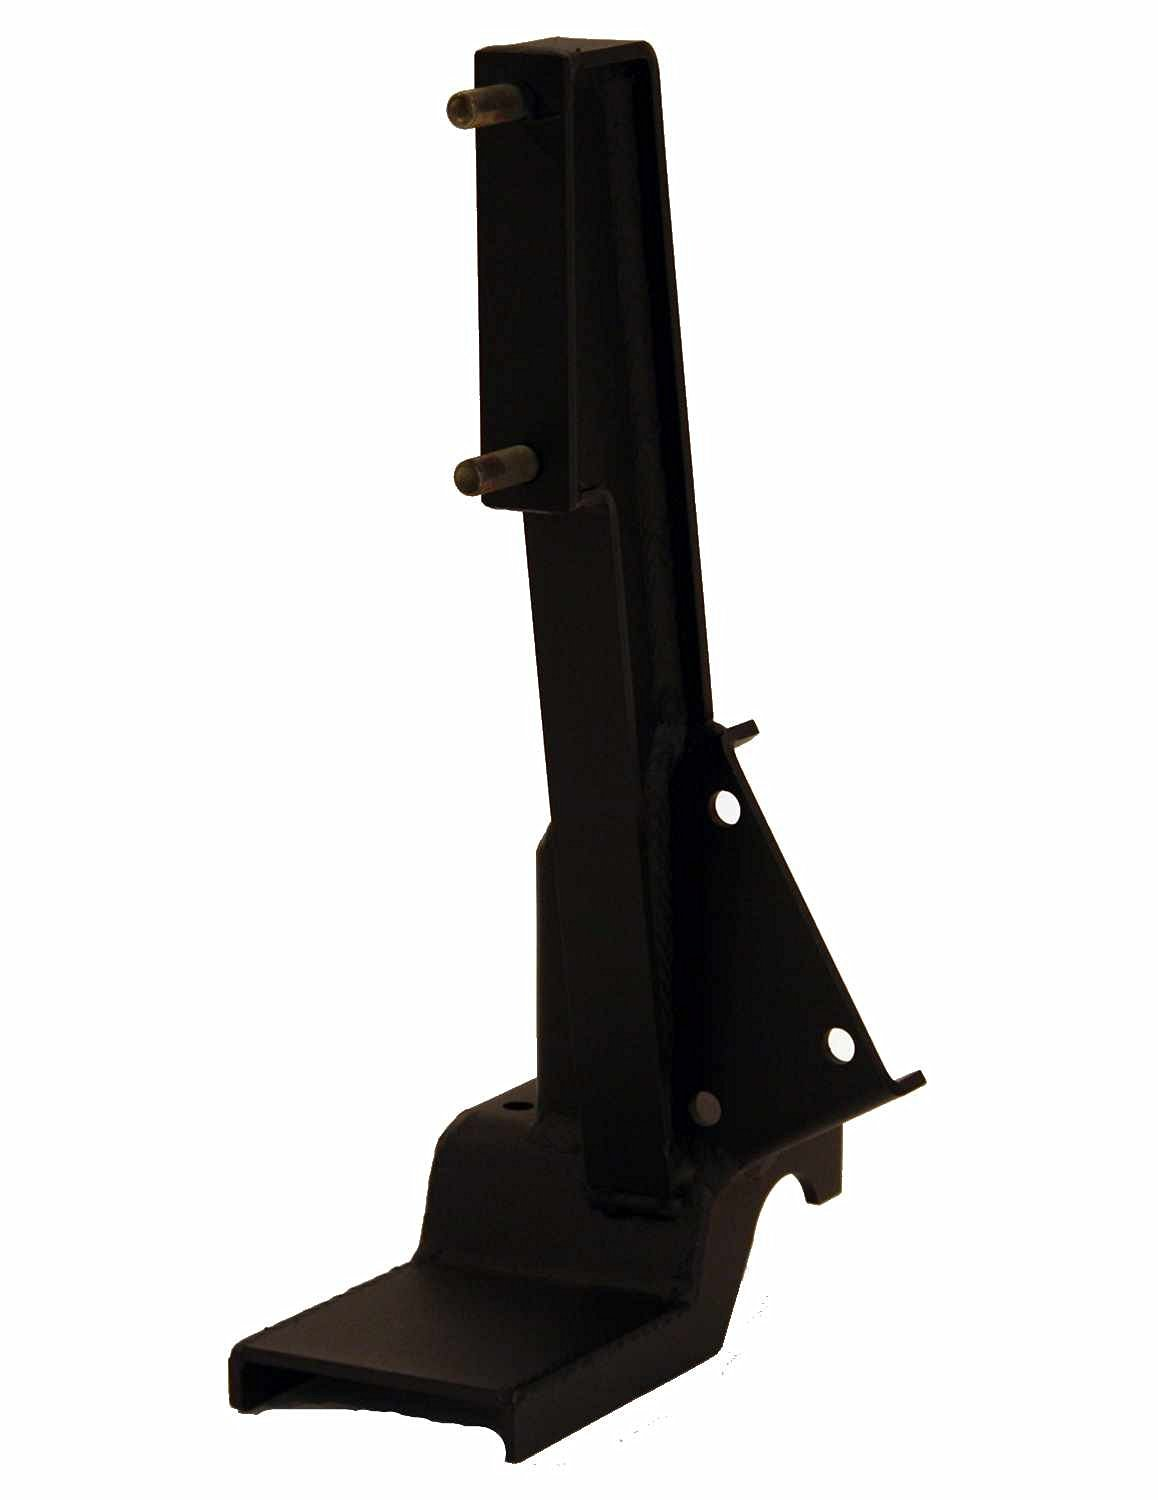 Fab Fours M1450-1 Hi Lift Jack Mount for Jeep Wrangler JK Rear Bumper with Tire Carrier